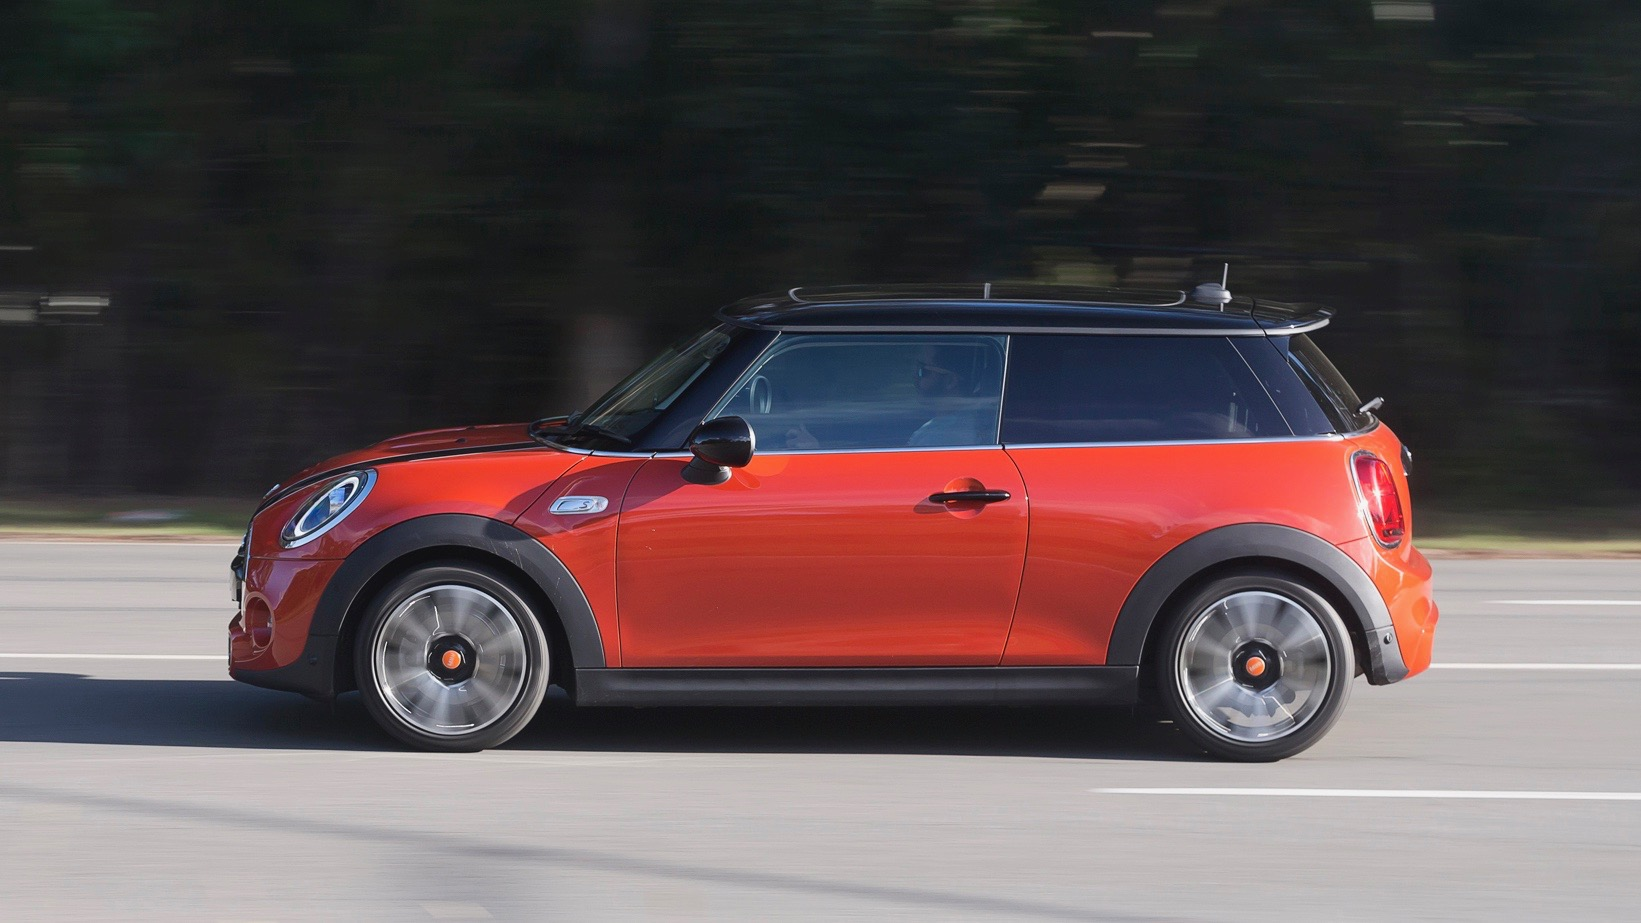 2018 MINI Cooper S 3-door Solaris Orange side moving